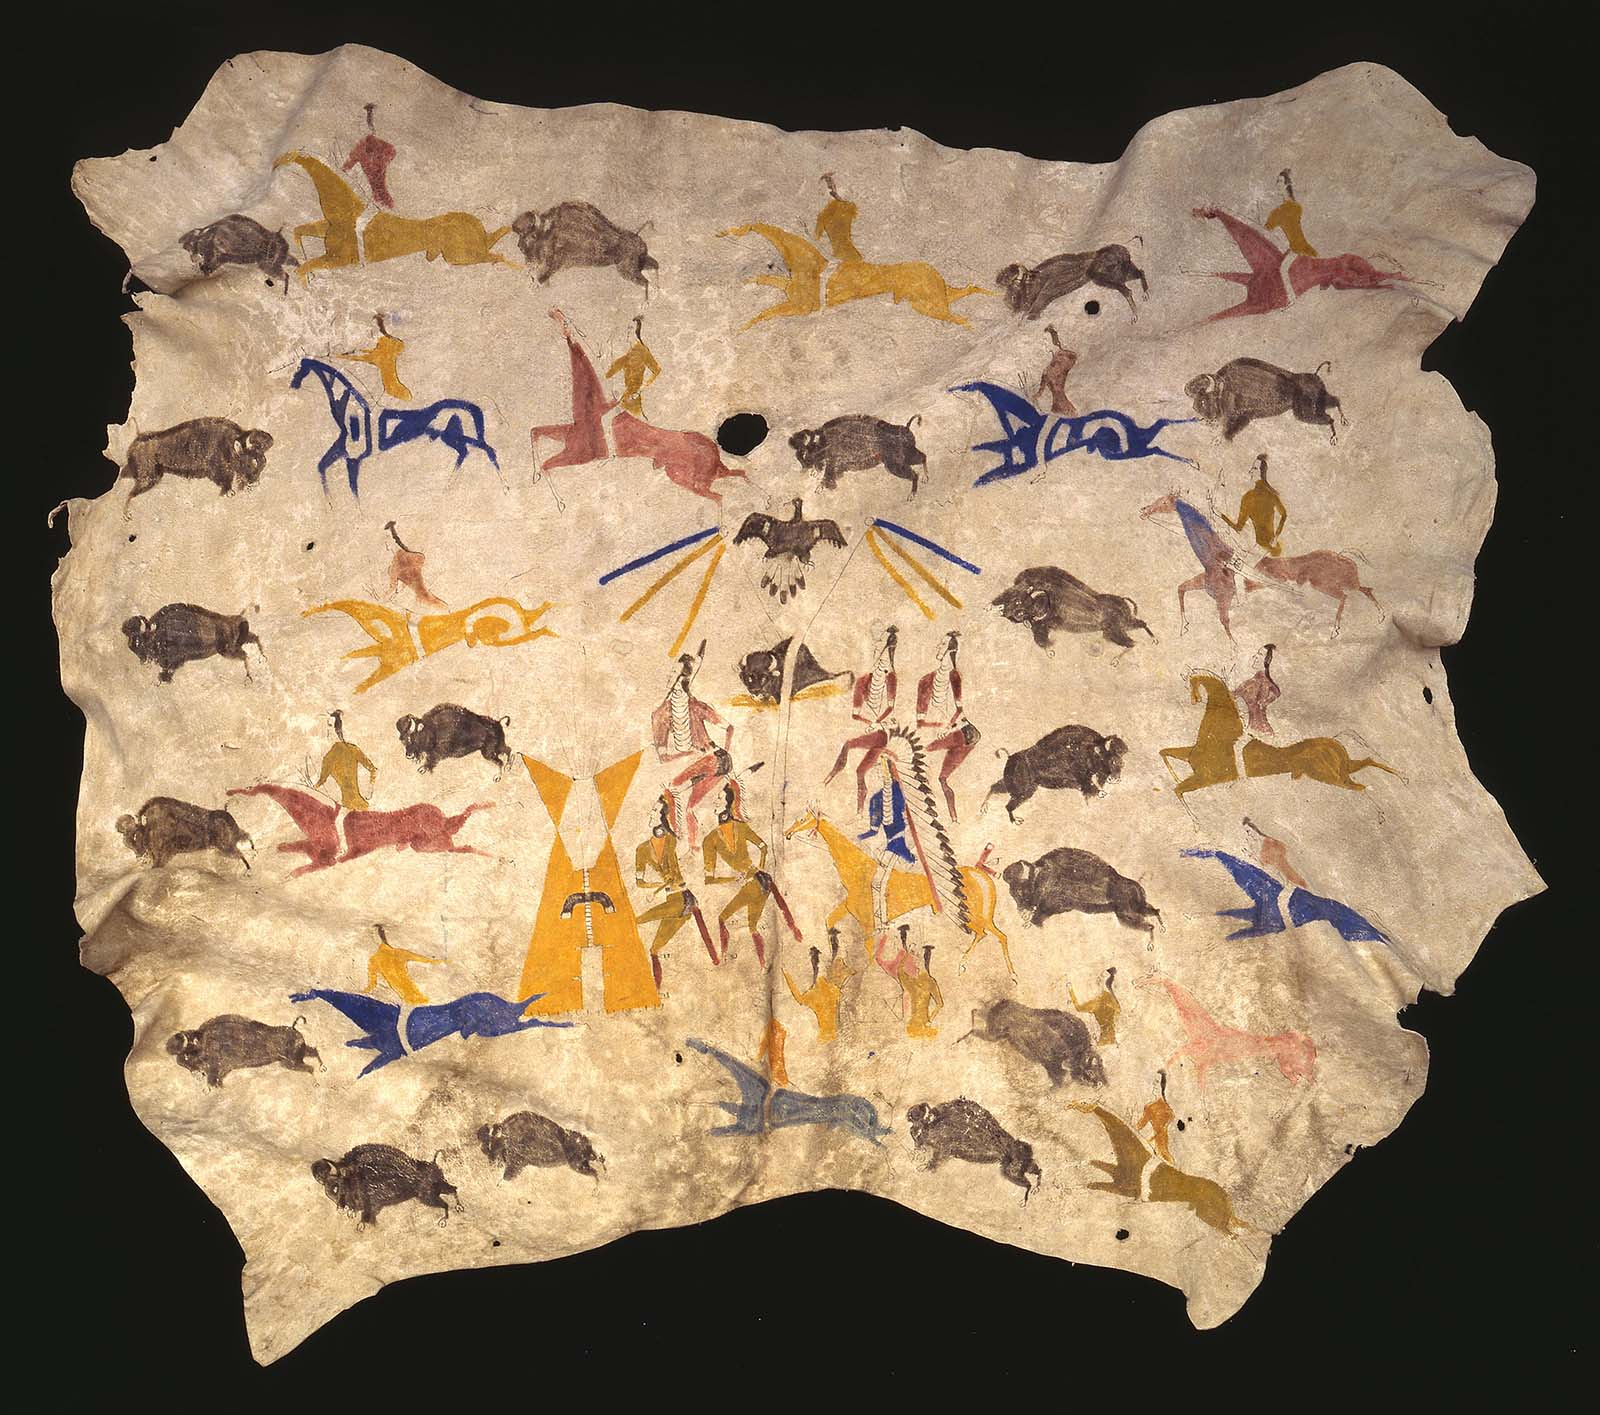 Fig. 1: Cadzi-Codsiogo, painted hide, Eastern Shoshone, ca. 1900. Tanned cow hide and pigment. Museum Purchase, Mary Jester Allen Collection. NA.702.31